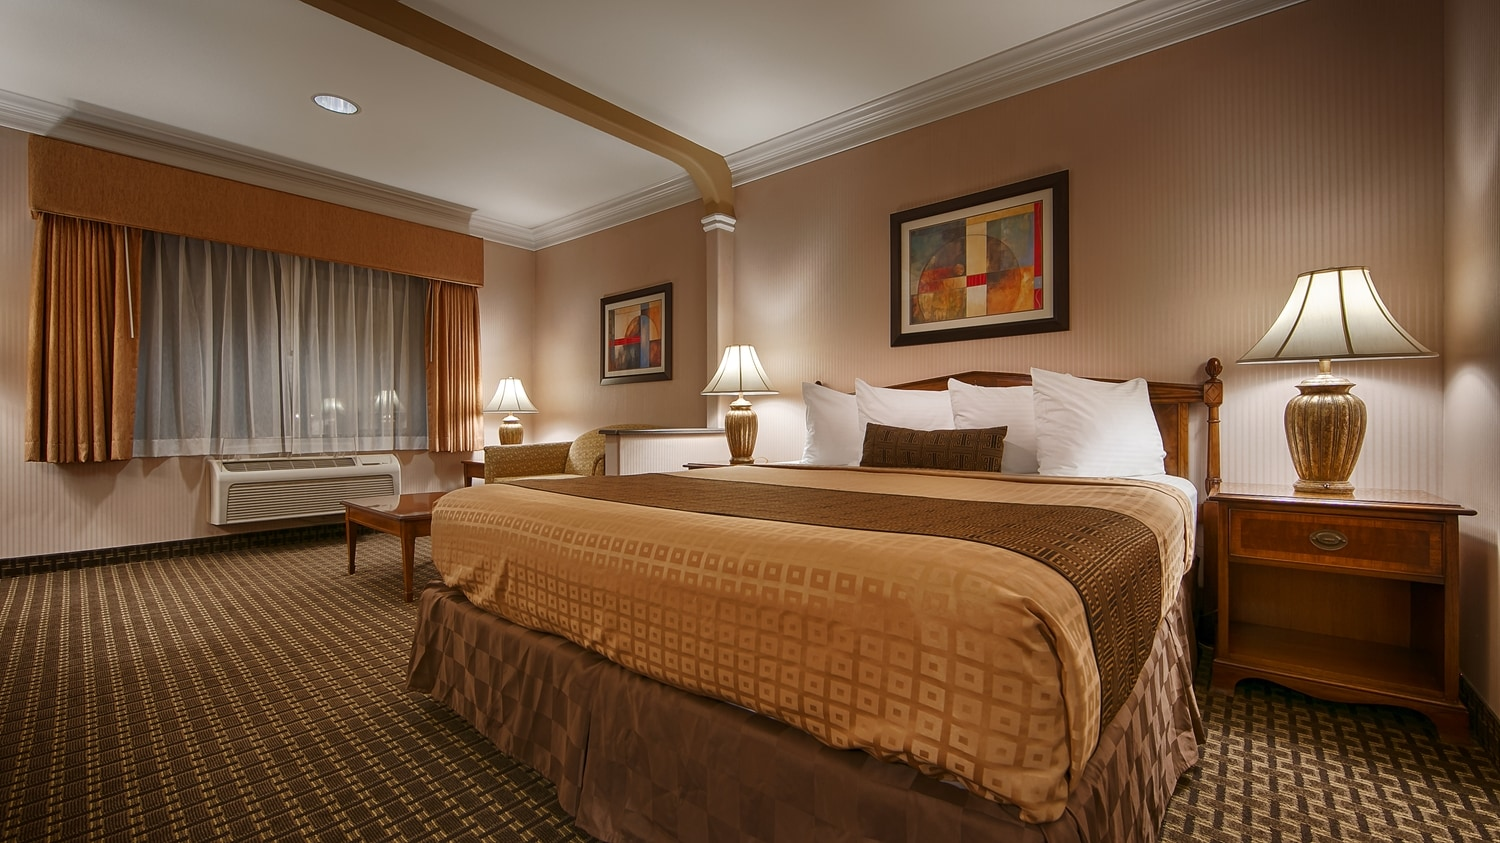 Our King Guest Room Was Designed With An Open Concept Ensuring You Have Enough Without Sacrificing Comfort